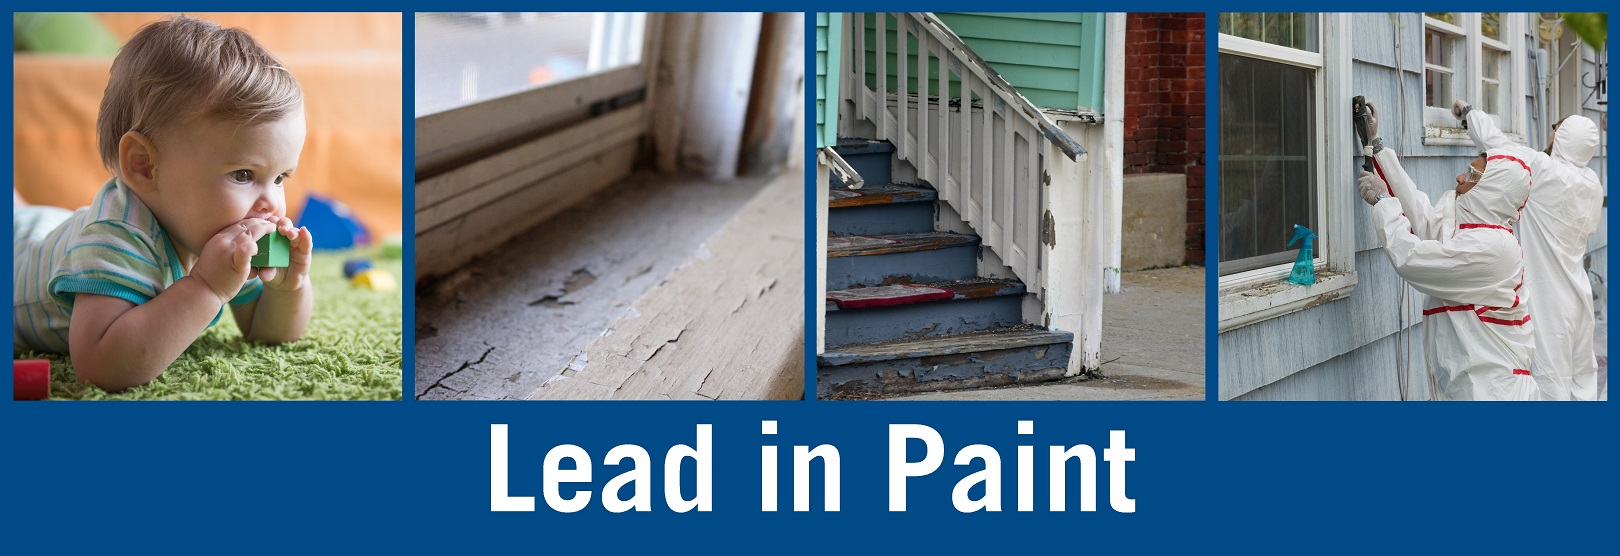 Lead-Safe Toolkit for Home-Based Child Care: Lead in Paint